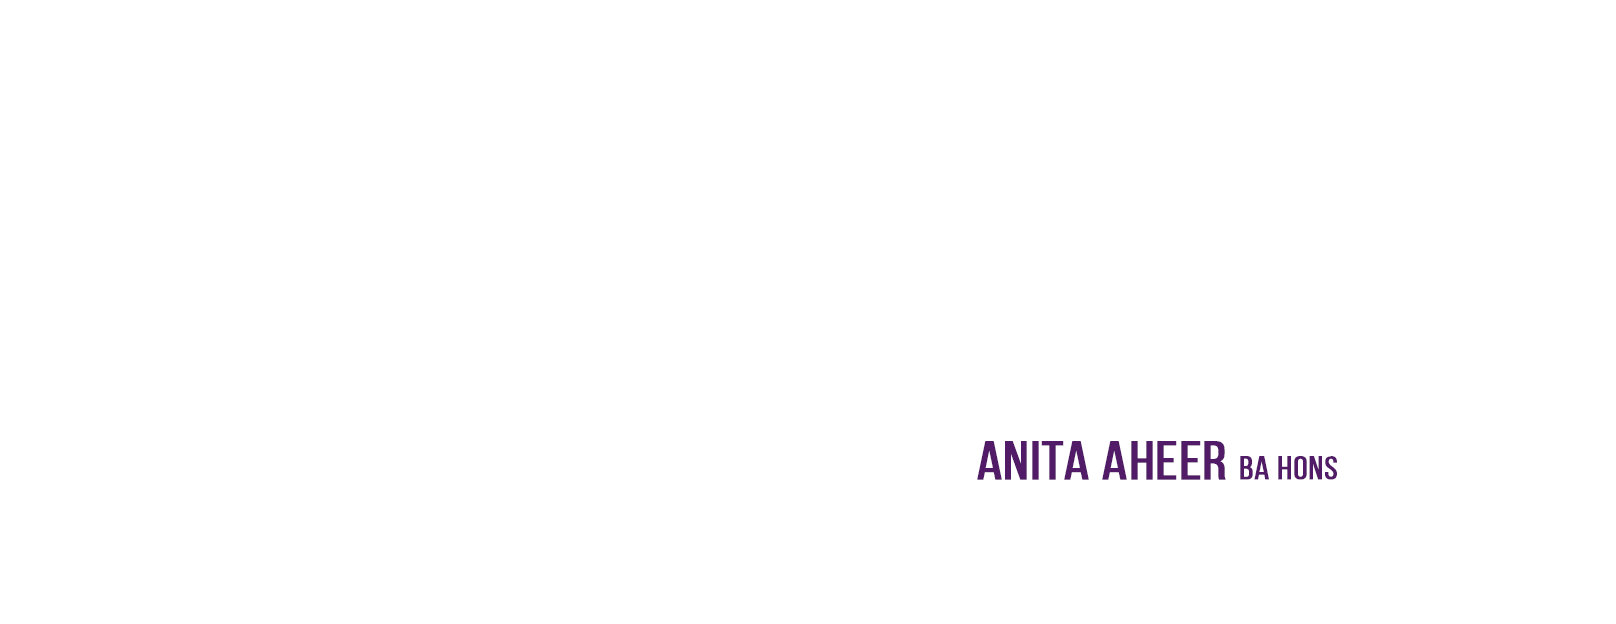 Anita Aheer - Massage Therapies